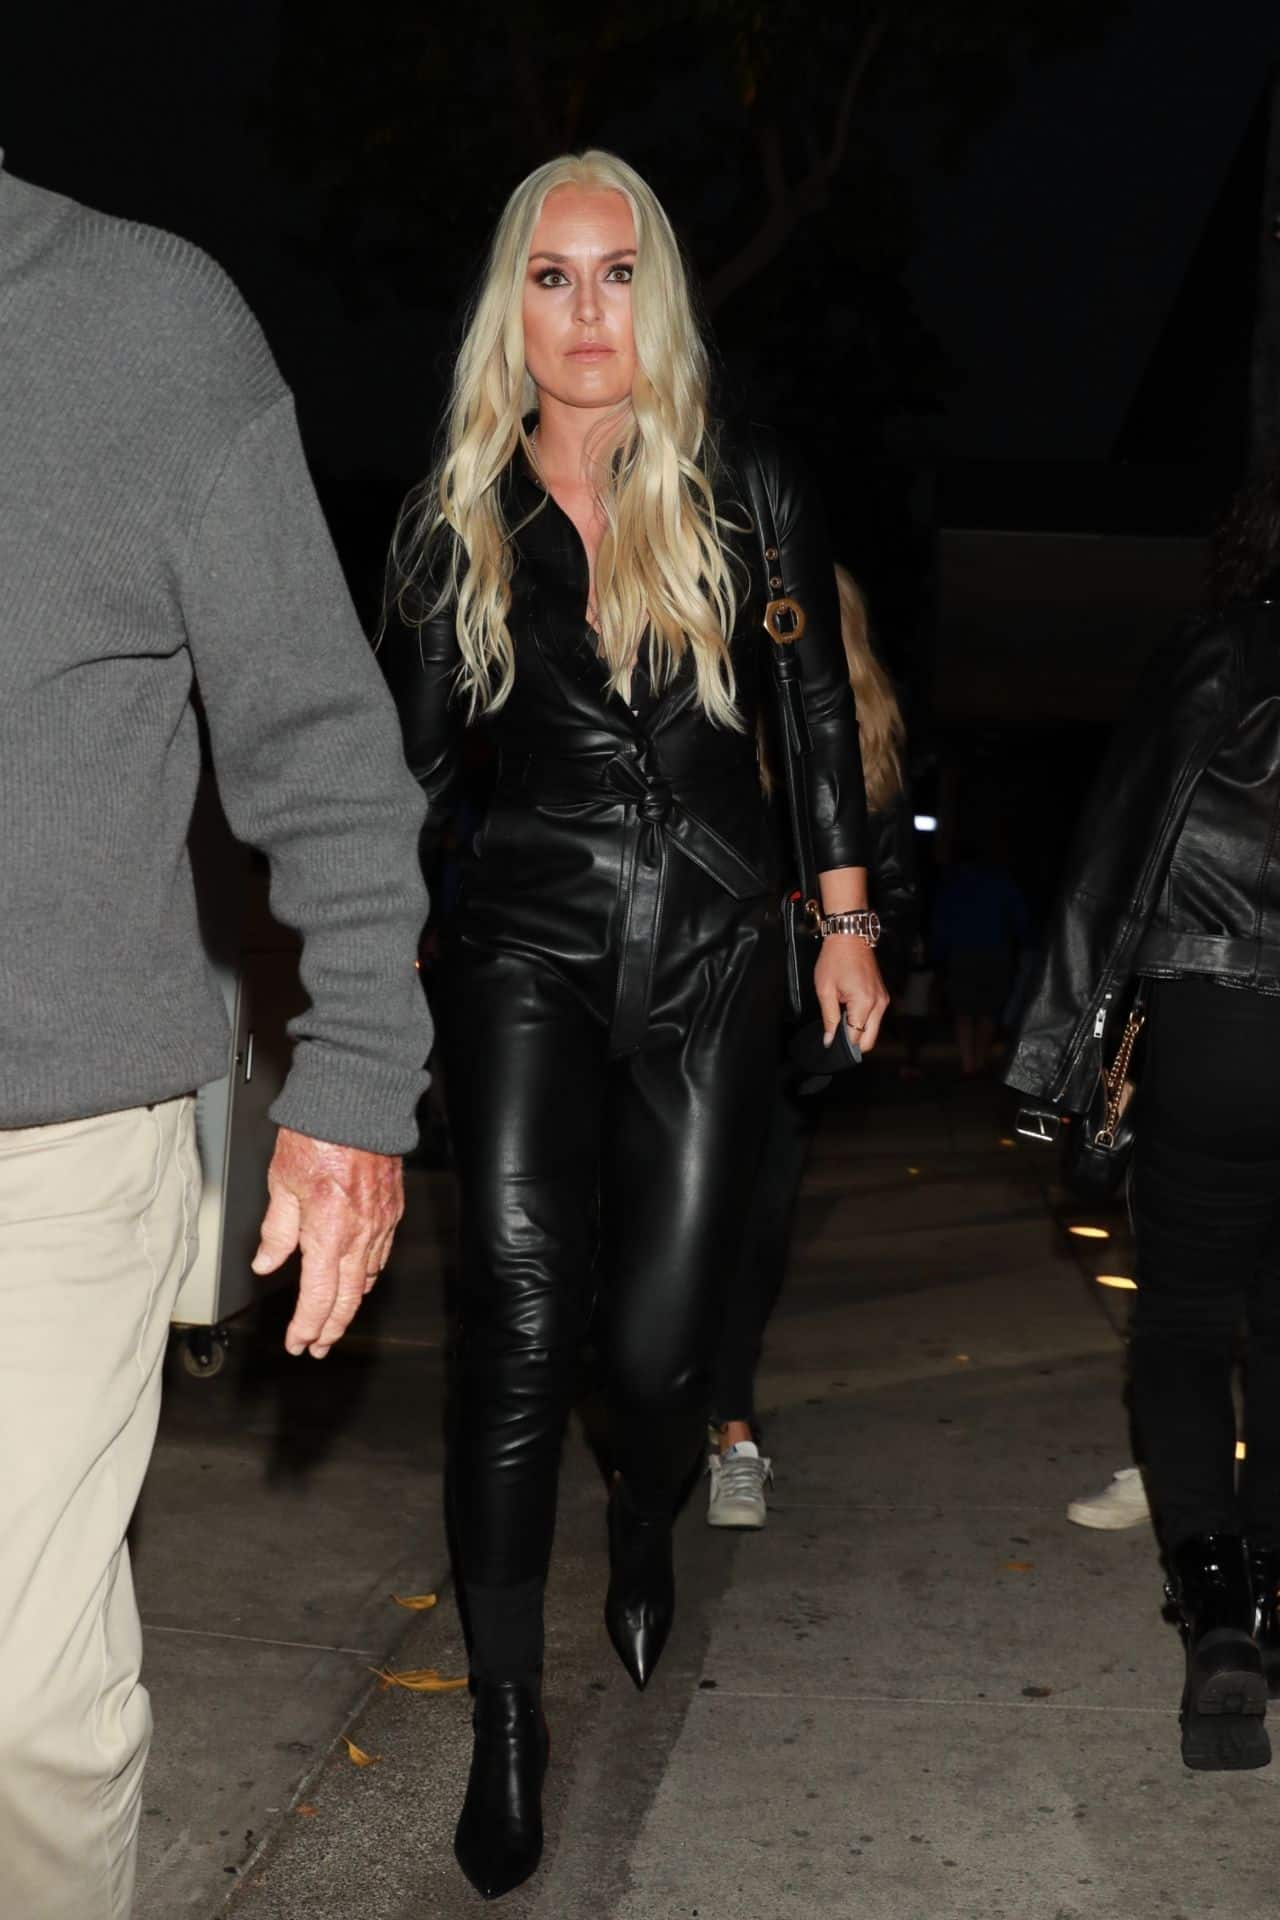 Lindsey Vonn Looks Stunning in the Leather Outfit at Craig's in WeHo